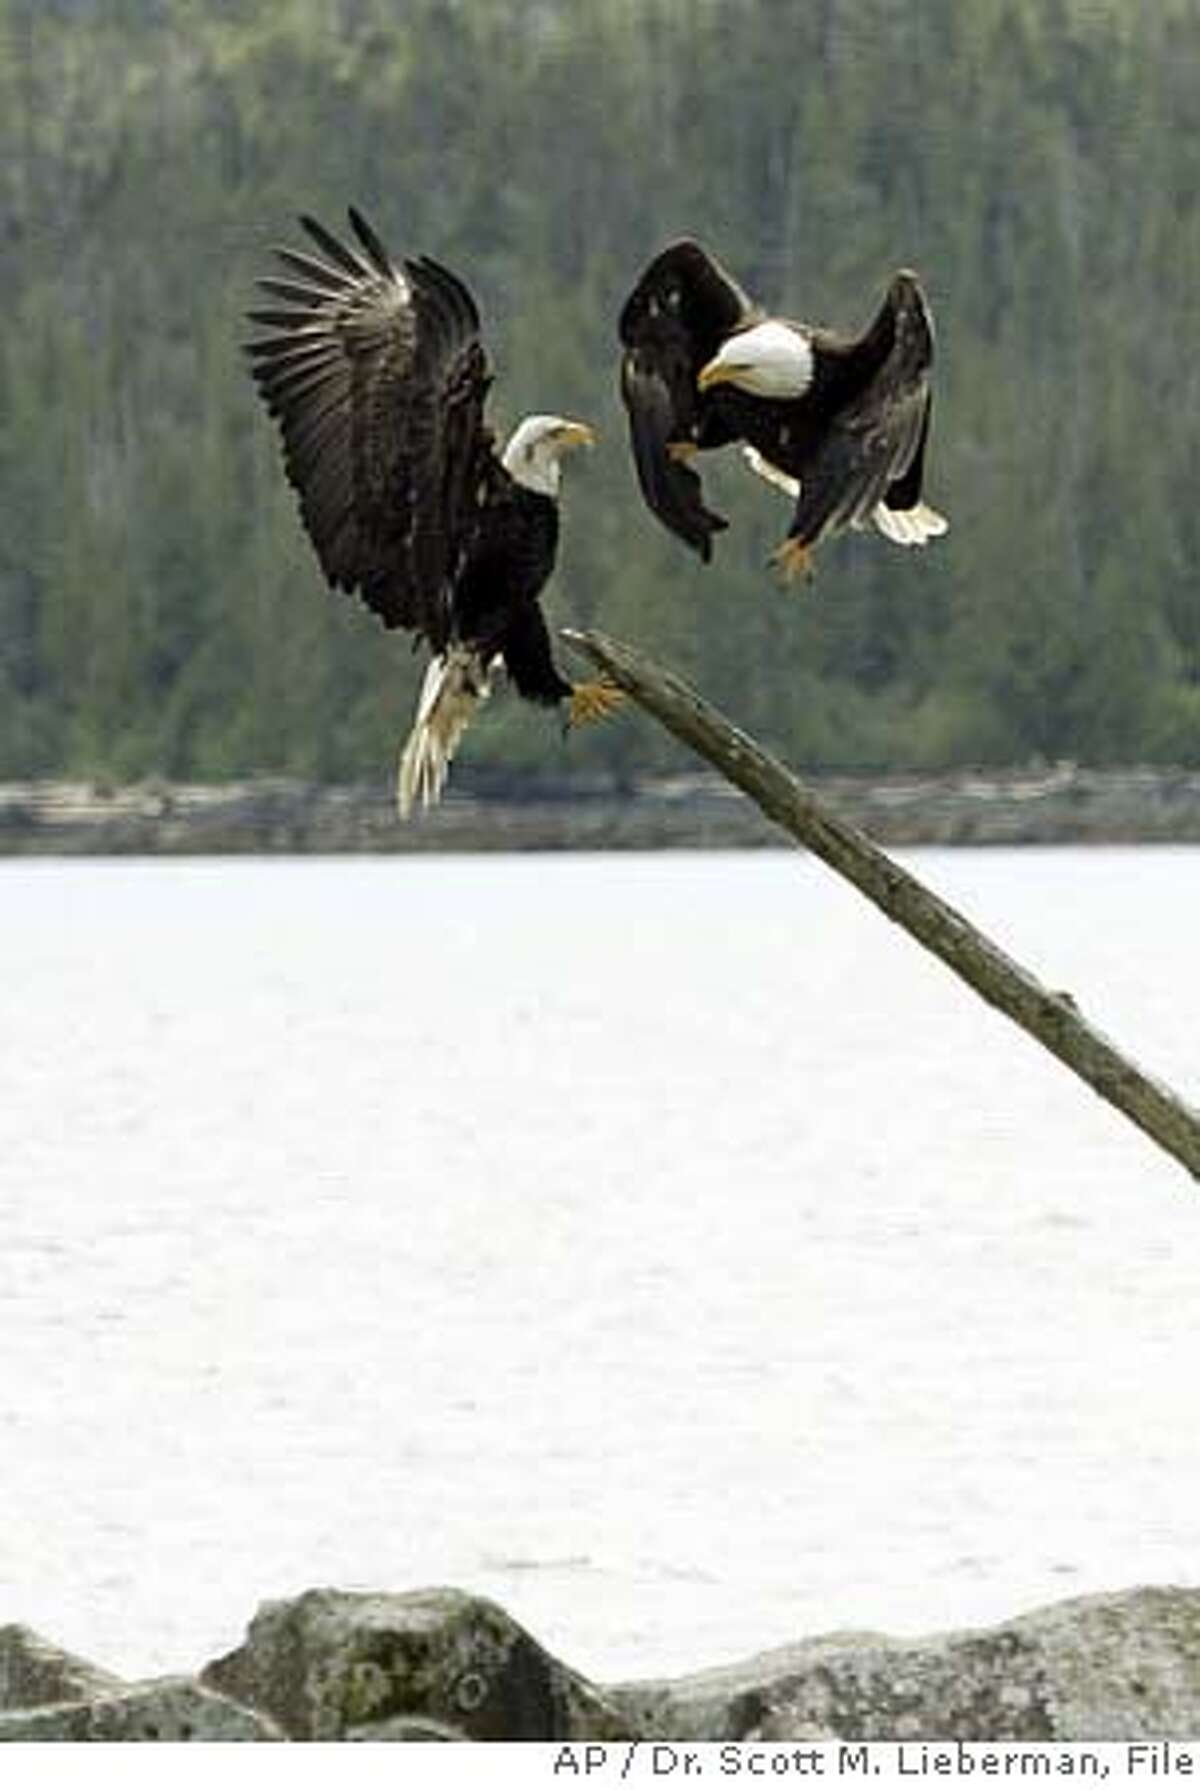 ** FOR IMMEDIATE RELEASE ** ** FILE ** Two bald eagles vie for a perch in Ketchikan, Alaska, in this June 6, 2006 file photo. (AP Photo/Dr. Scott M. Lieberman, File) A JUNE 6, 2006 FILE PHOTO.